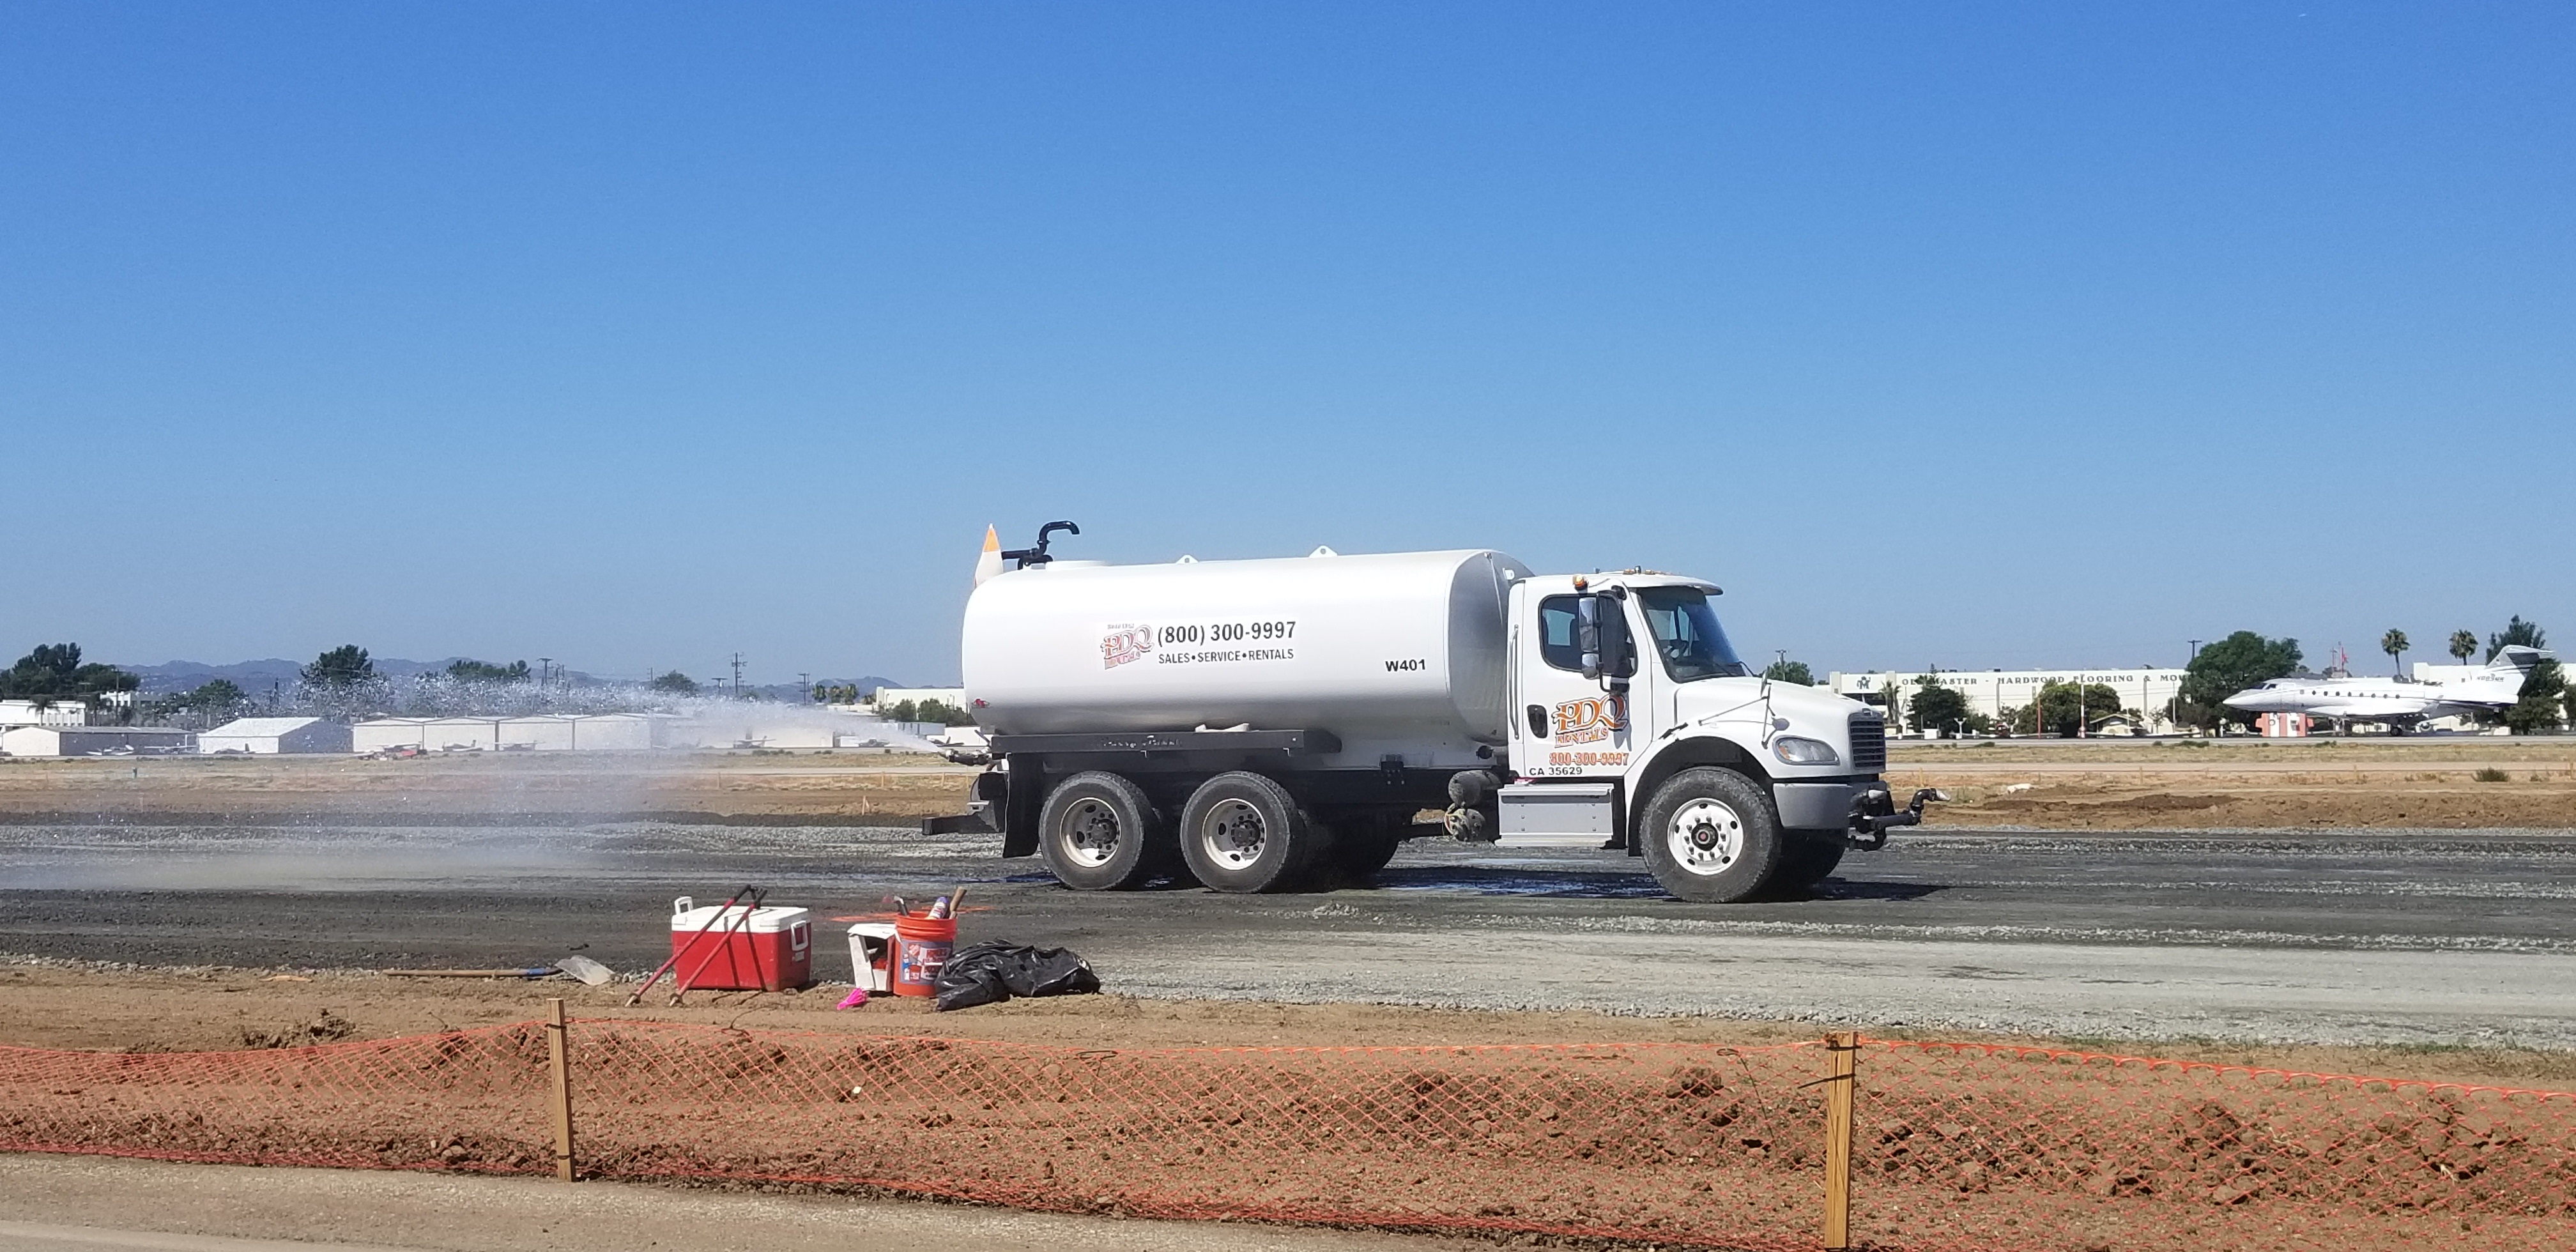 Taxiway B Project - Phase 6 - Week 5